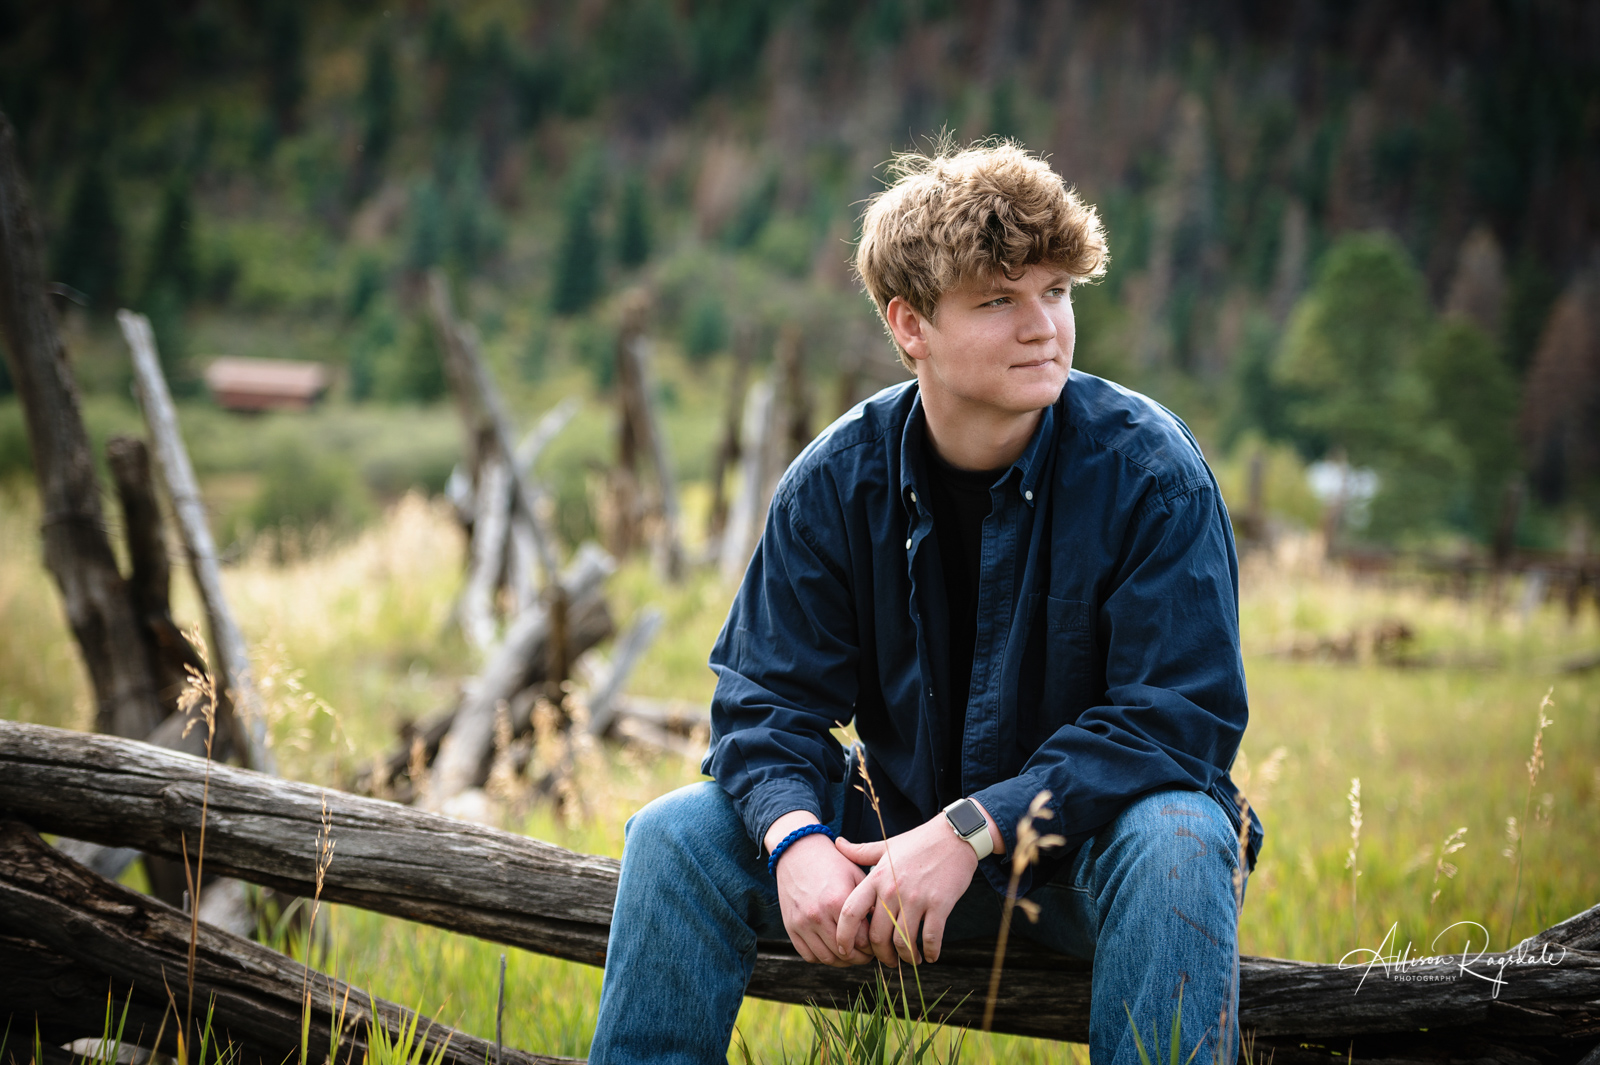 senior guy portrait rustic wood fence